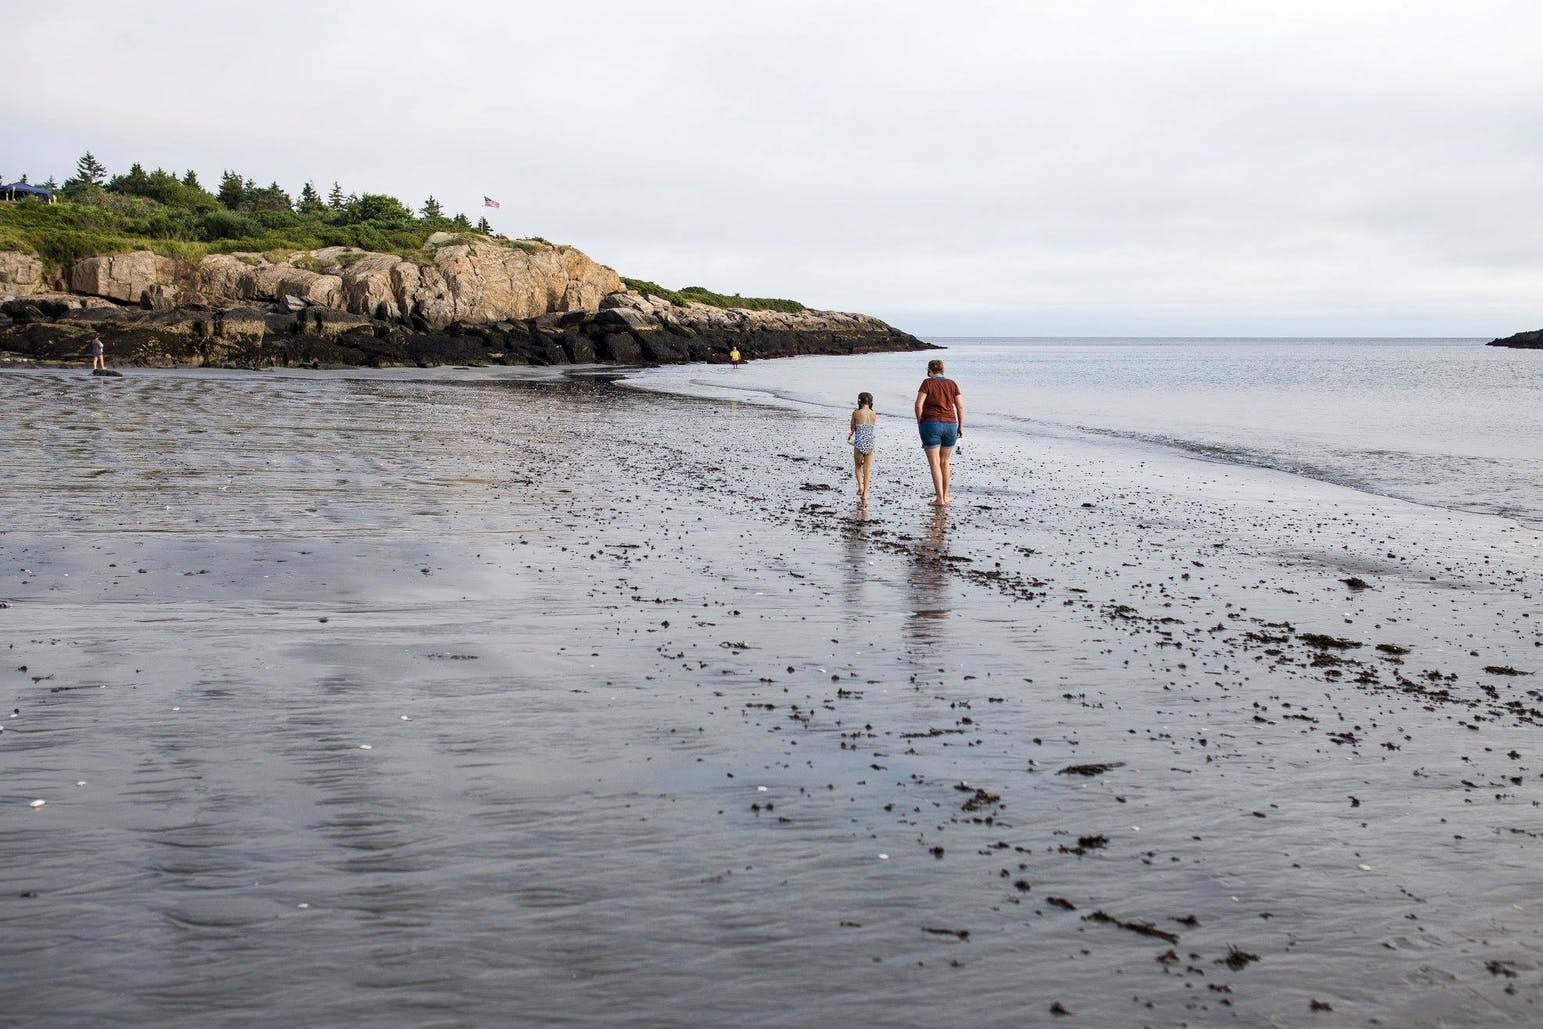 Two people walking on the beach on the coast of Hermit island, Maine.